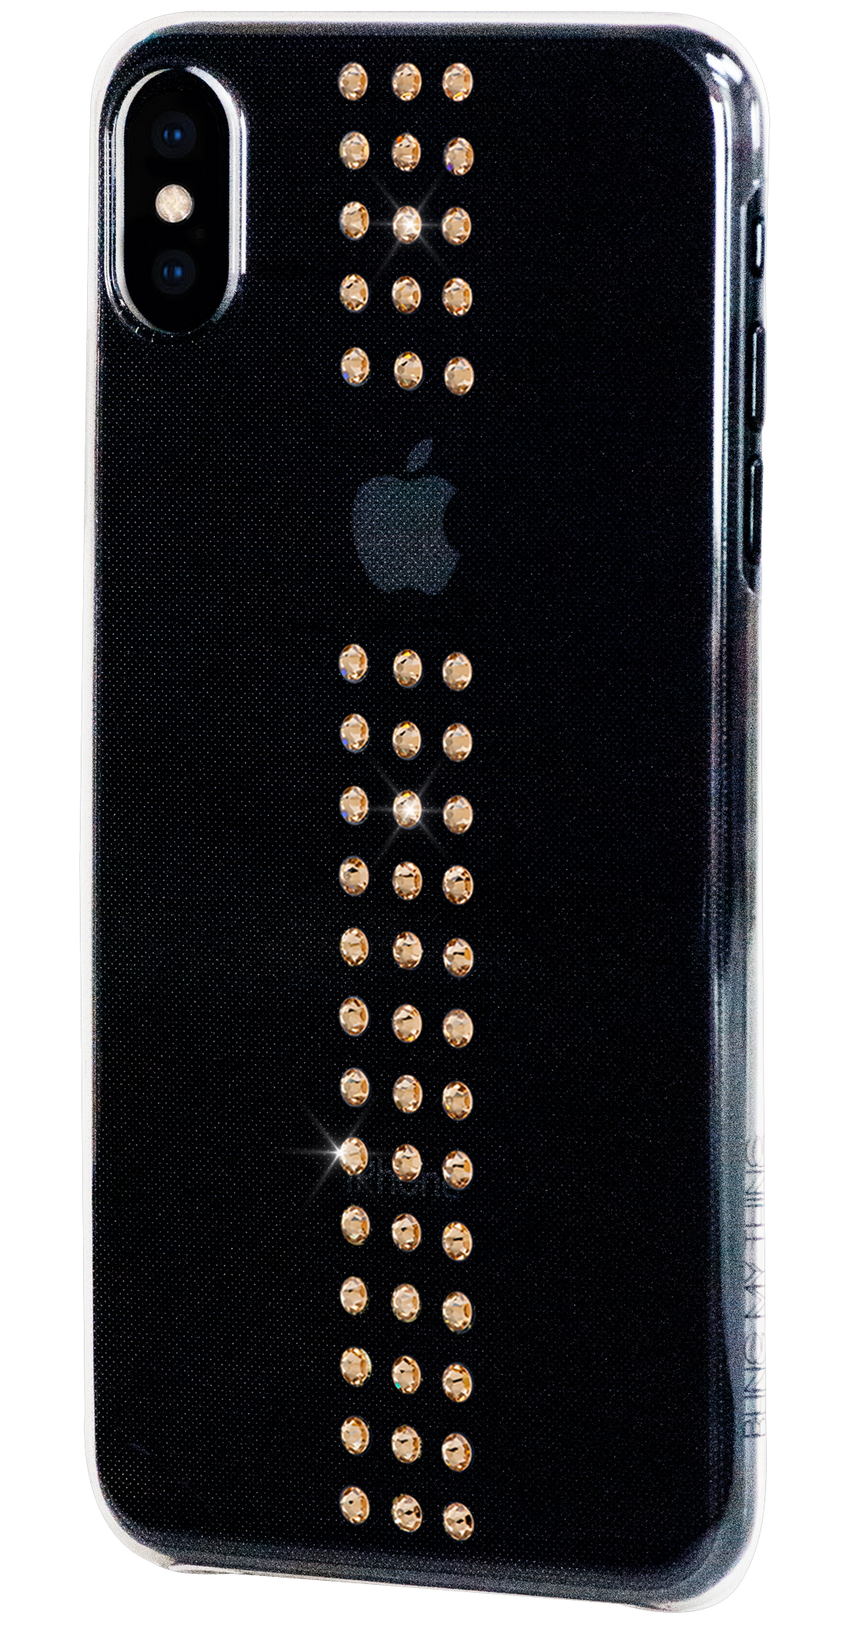 STRIPE ᛫ on ultra-clear case for iPhone XS Max - Bling My Thing - Swarovski Protective iPhone Case